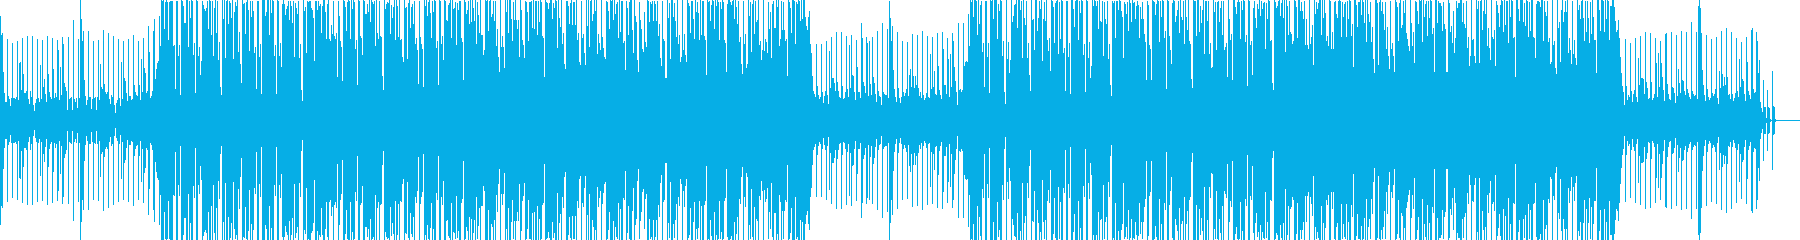 Refreshing and bright four-stroke electro music's reproduced waveform